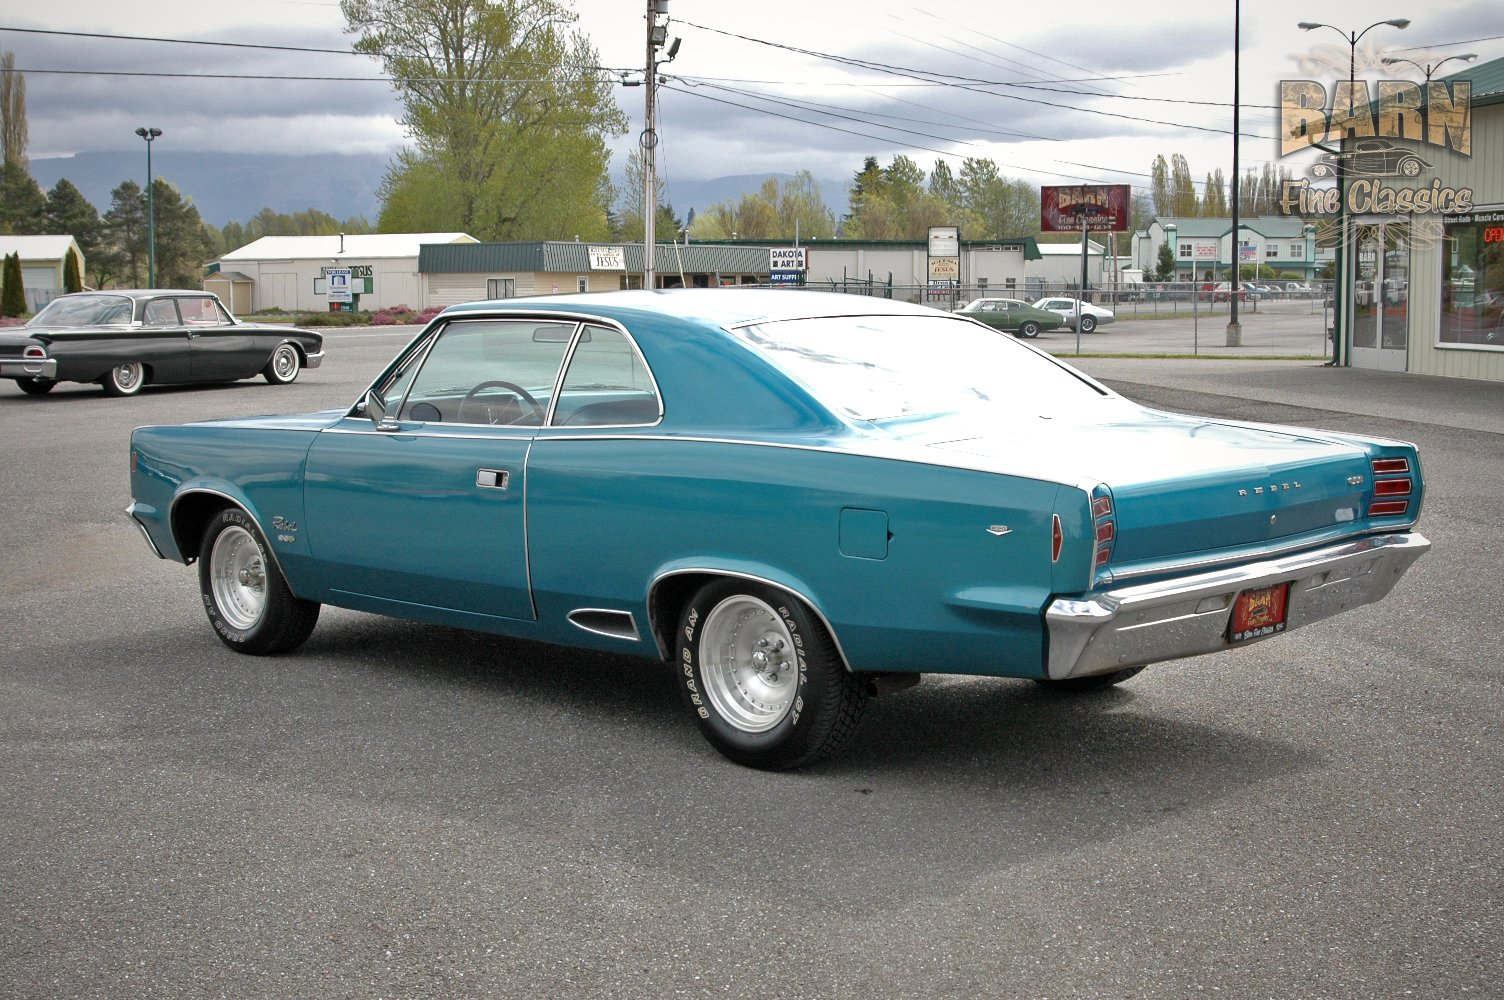 Cars That Start With C >> 1968 AMC Rebel SST 290 Classic Muscle Old Original USA 1500x1000-19 wallpaper | 1504x1000 ...